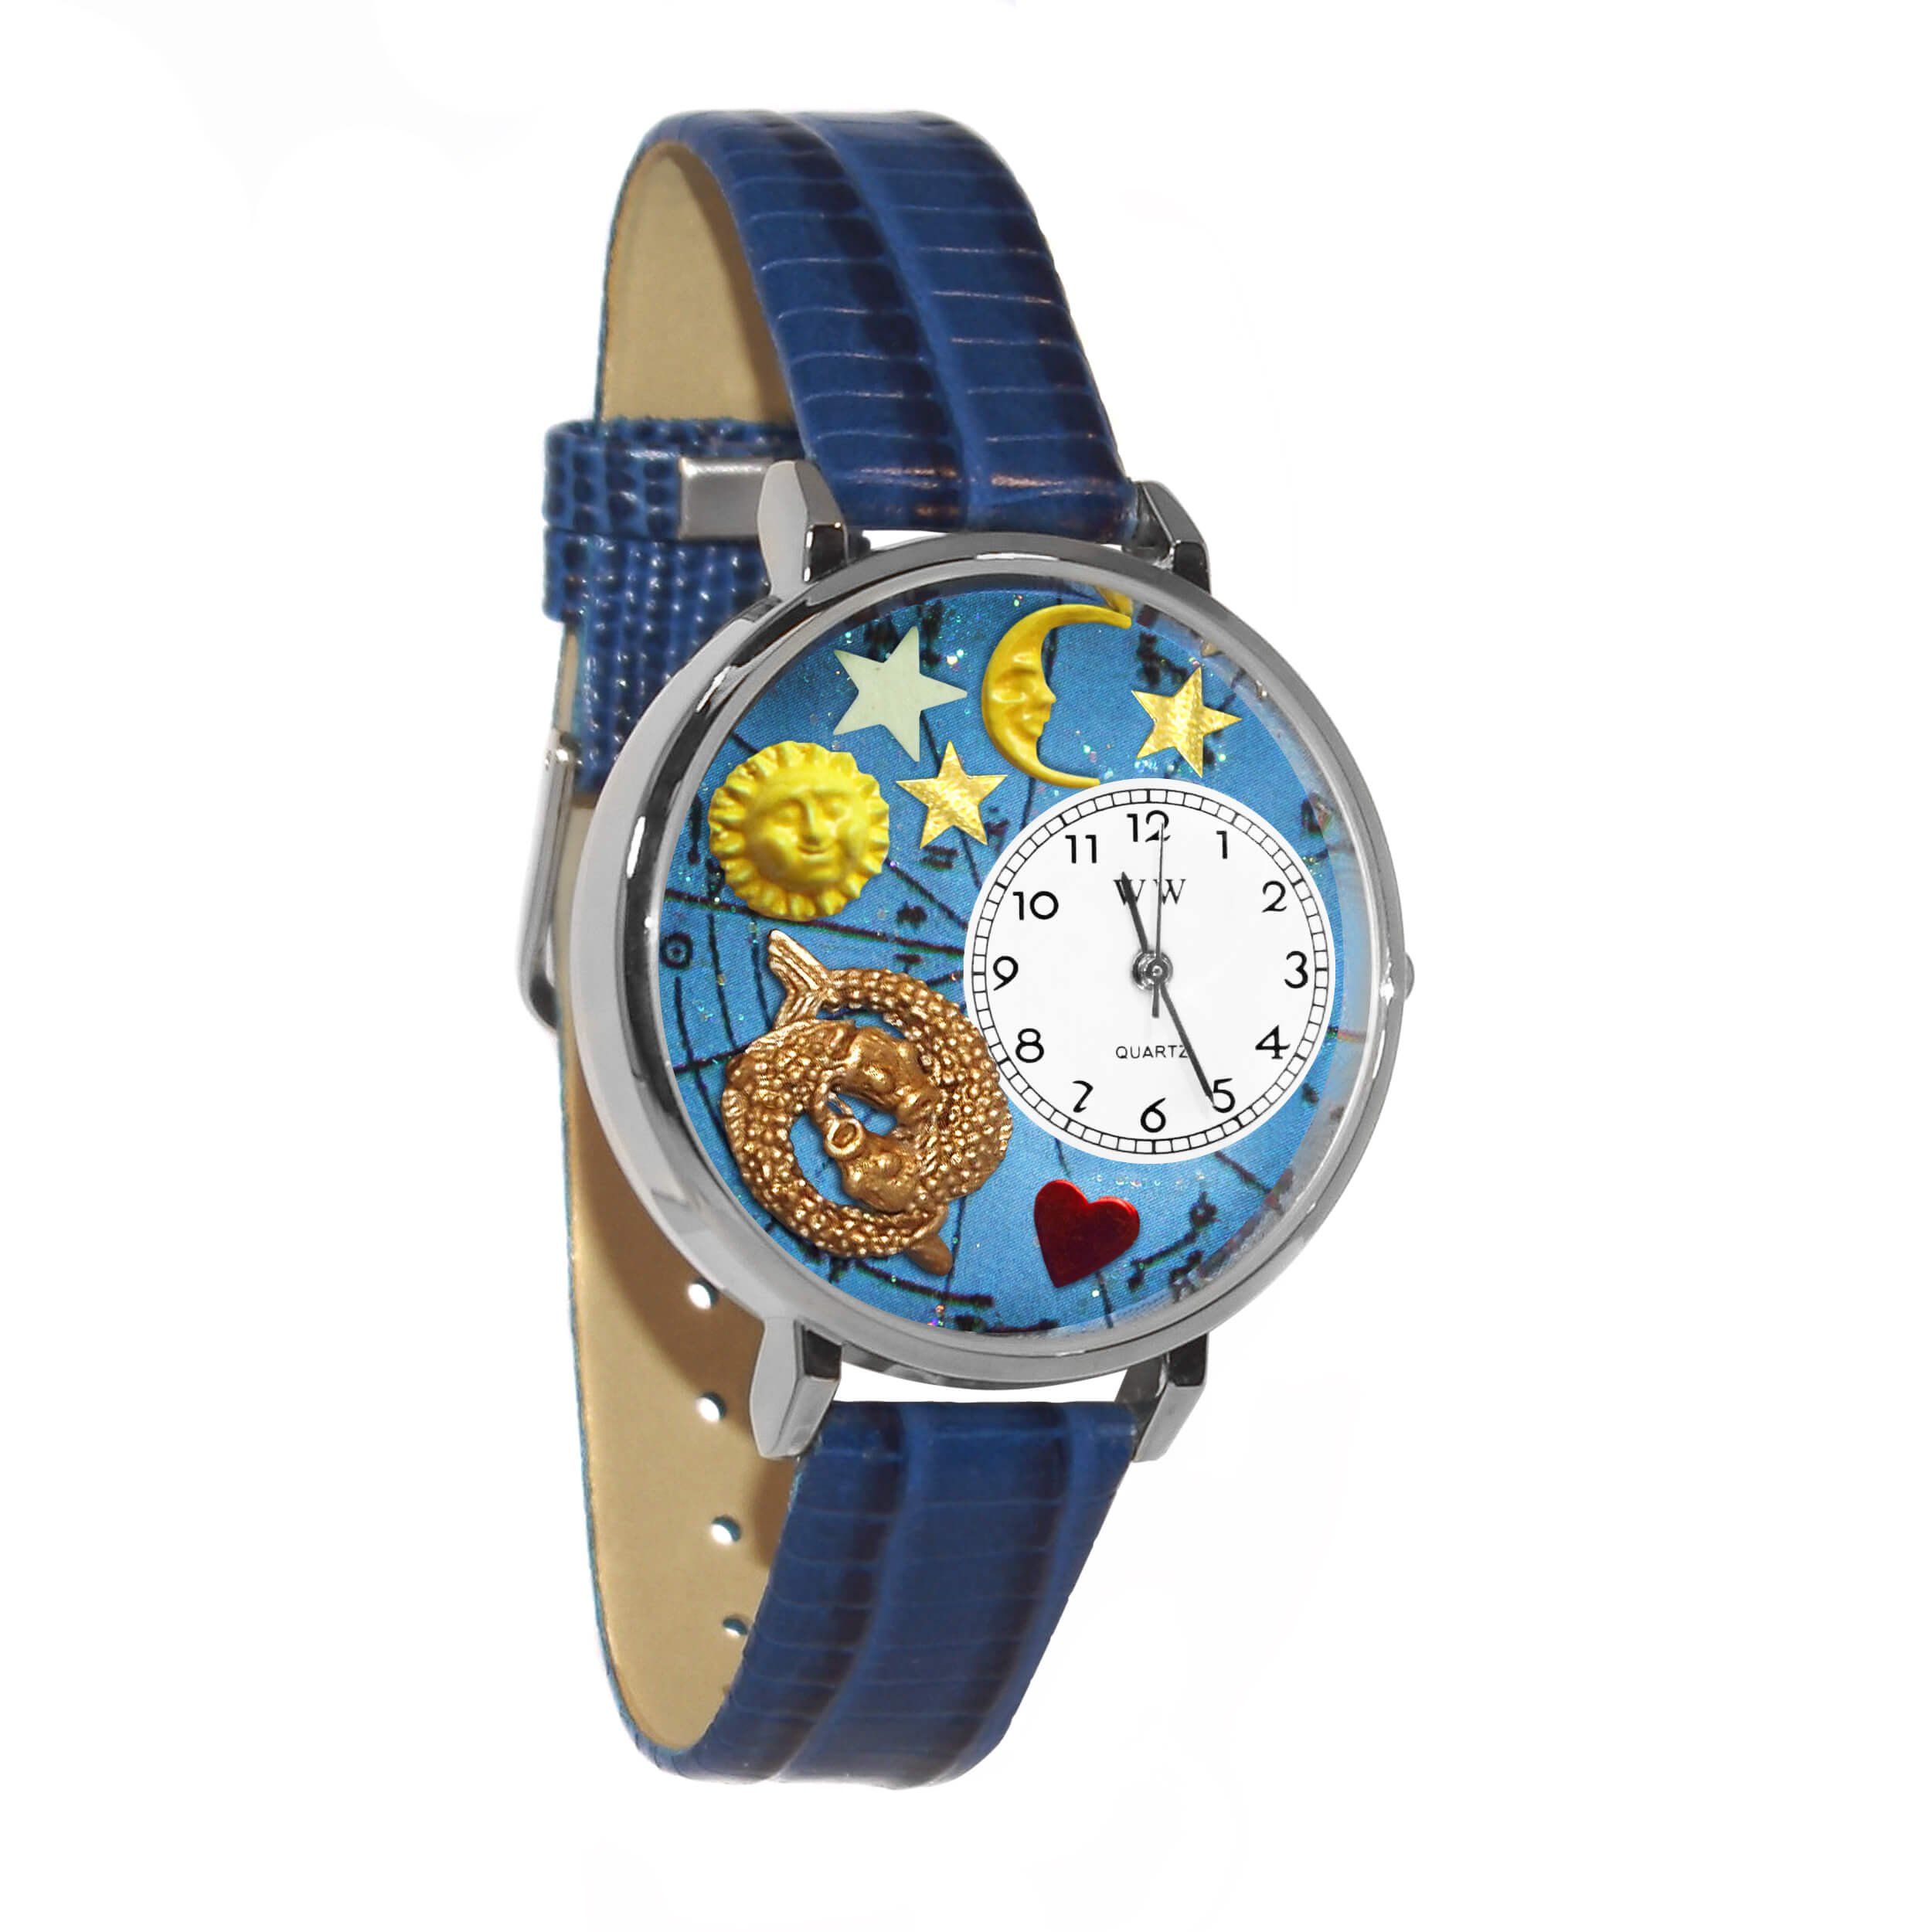 Whimsical Watches Unisex U1810009 Pisces Royal Blue Leather Watch